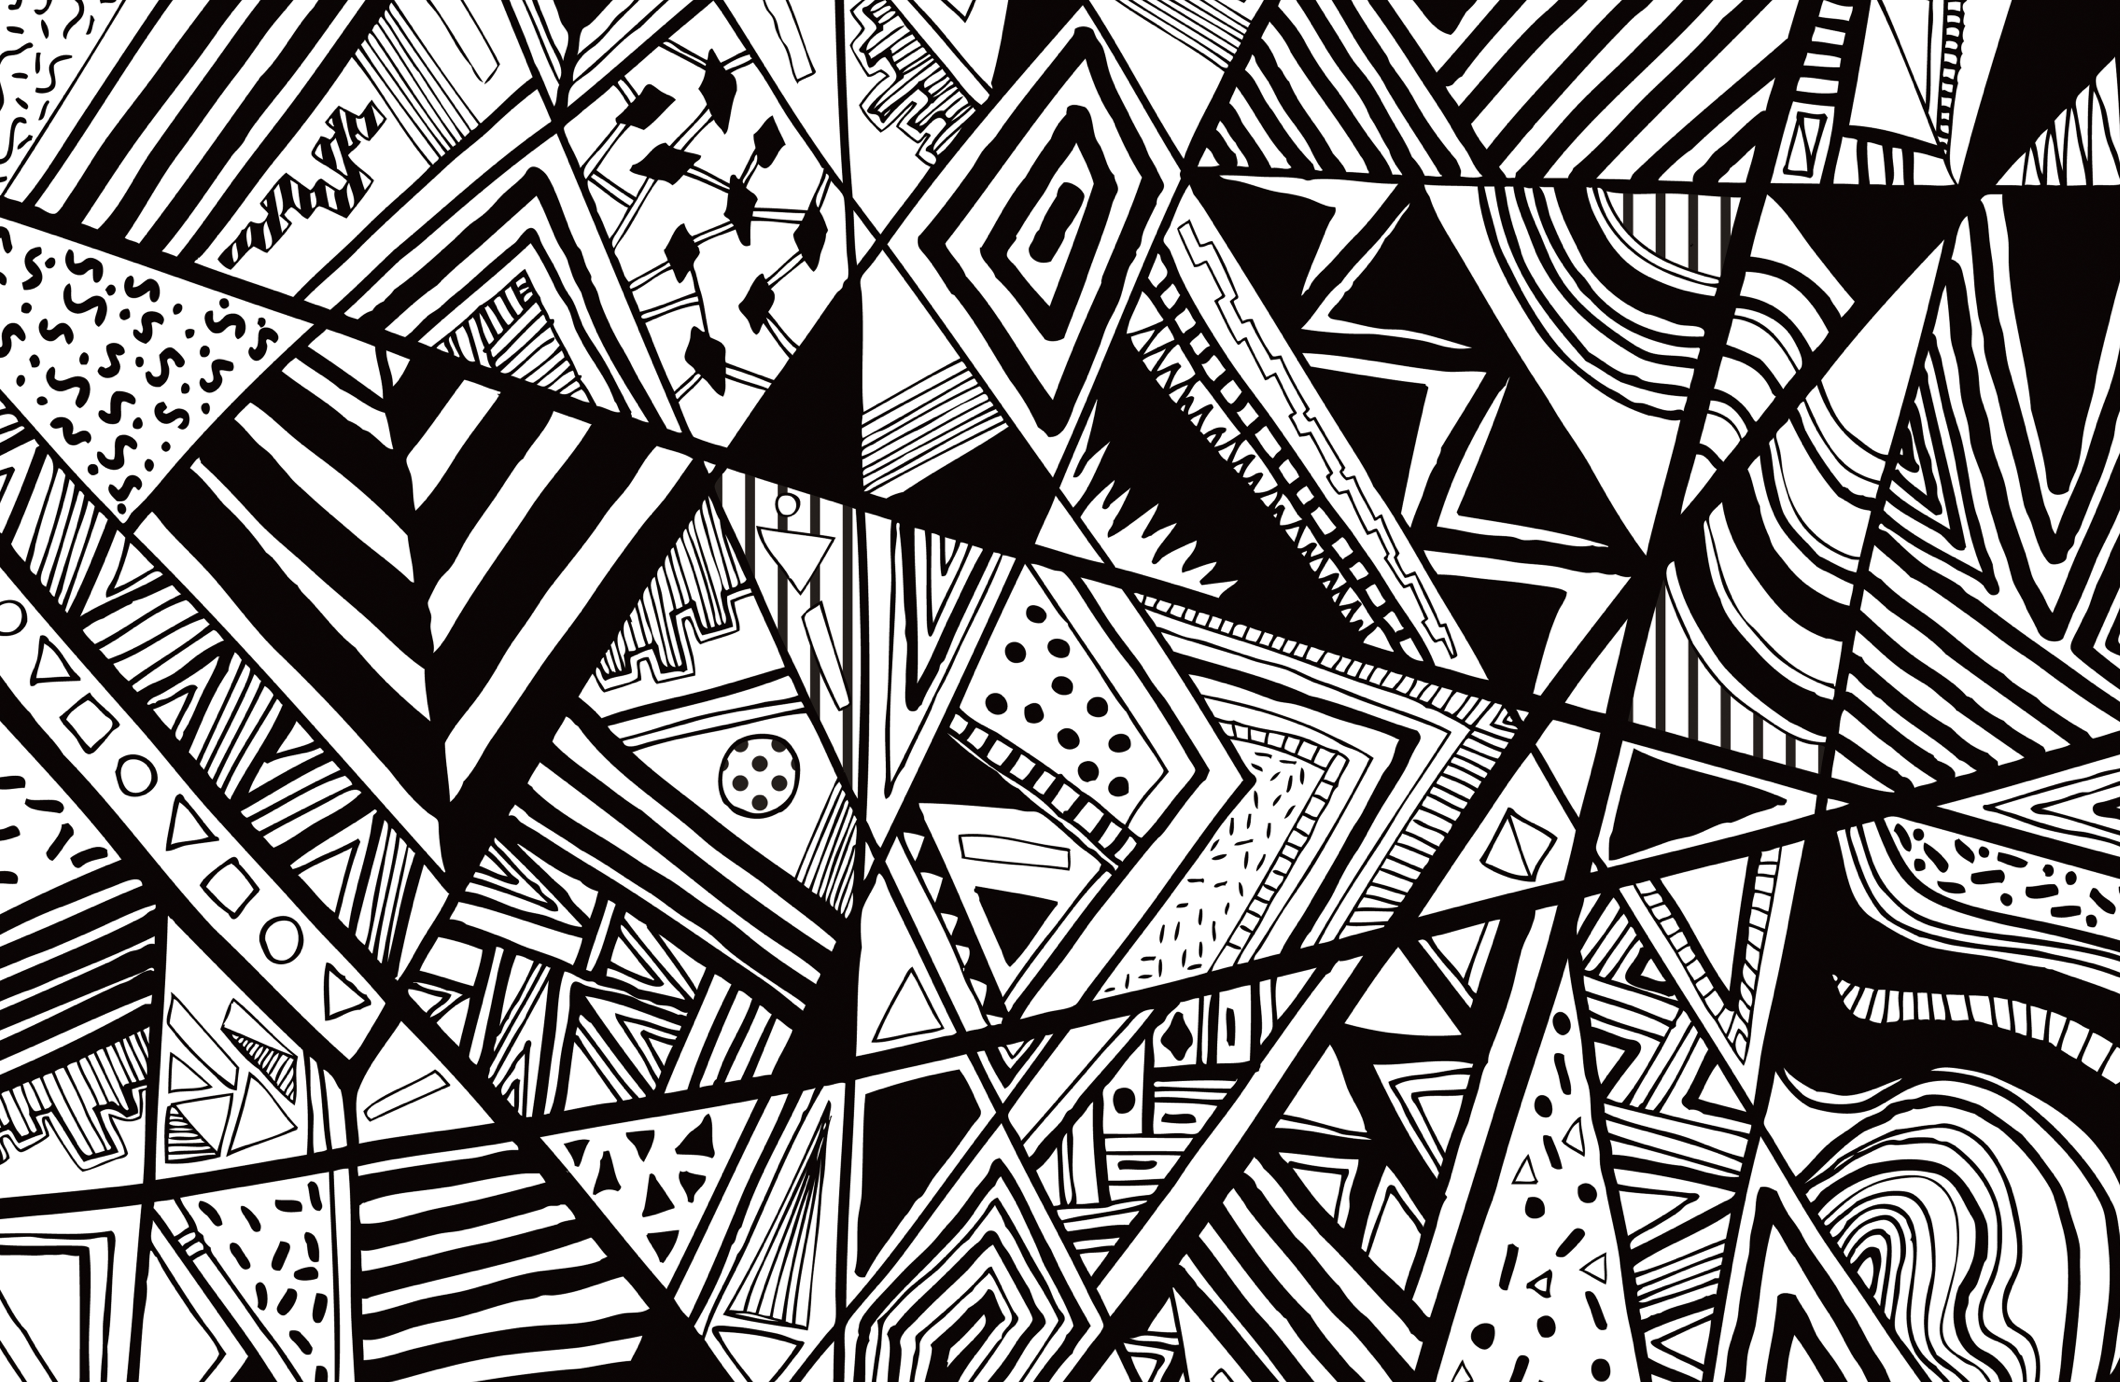 18 Black And White Abstract Designs Pattern Images